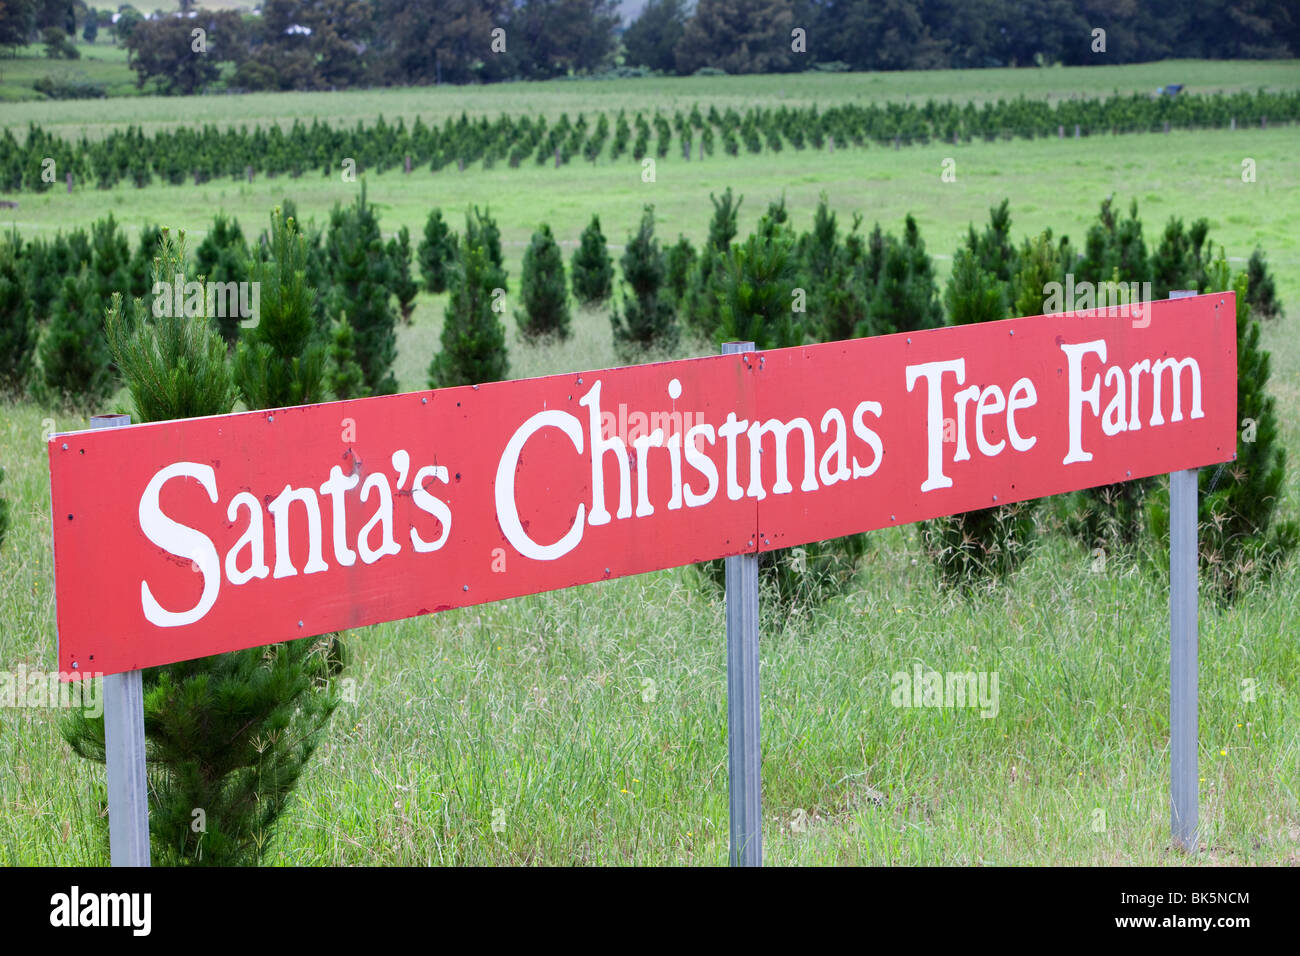 santas christmas tree farm below the macquarie pass national park in new south wales australia